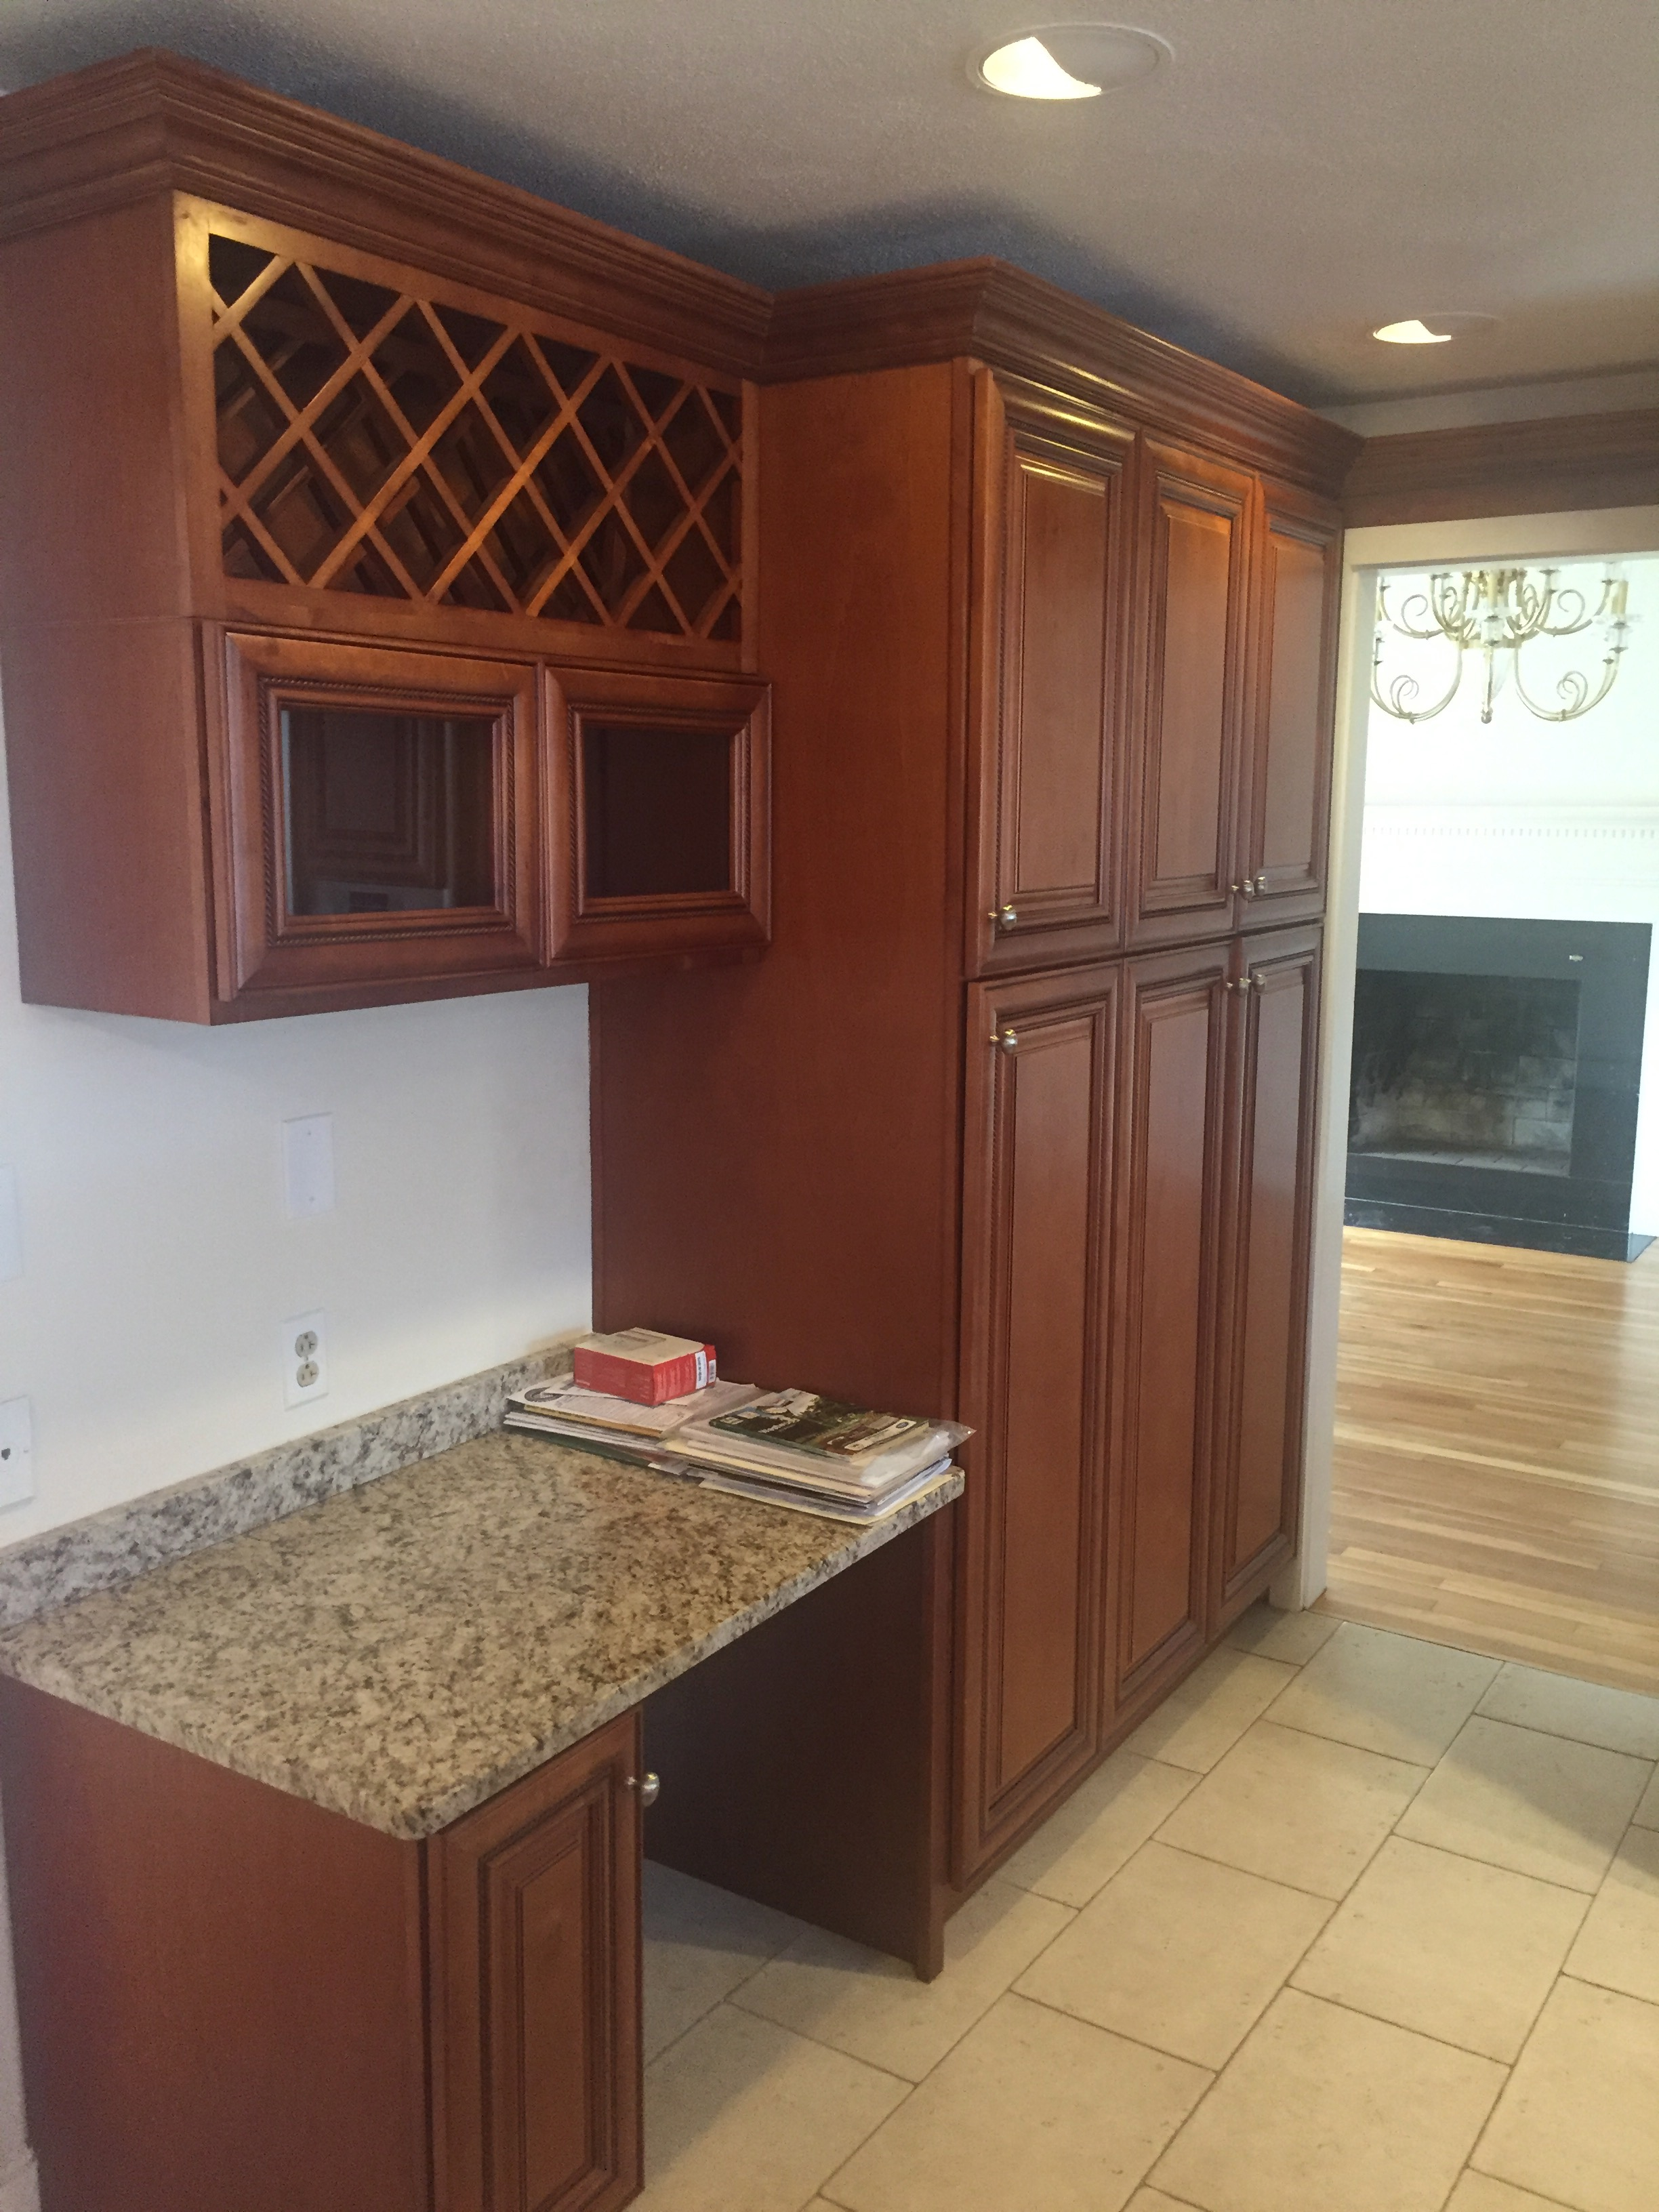 Cabinets done by d'Lanes Painting